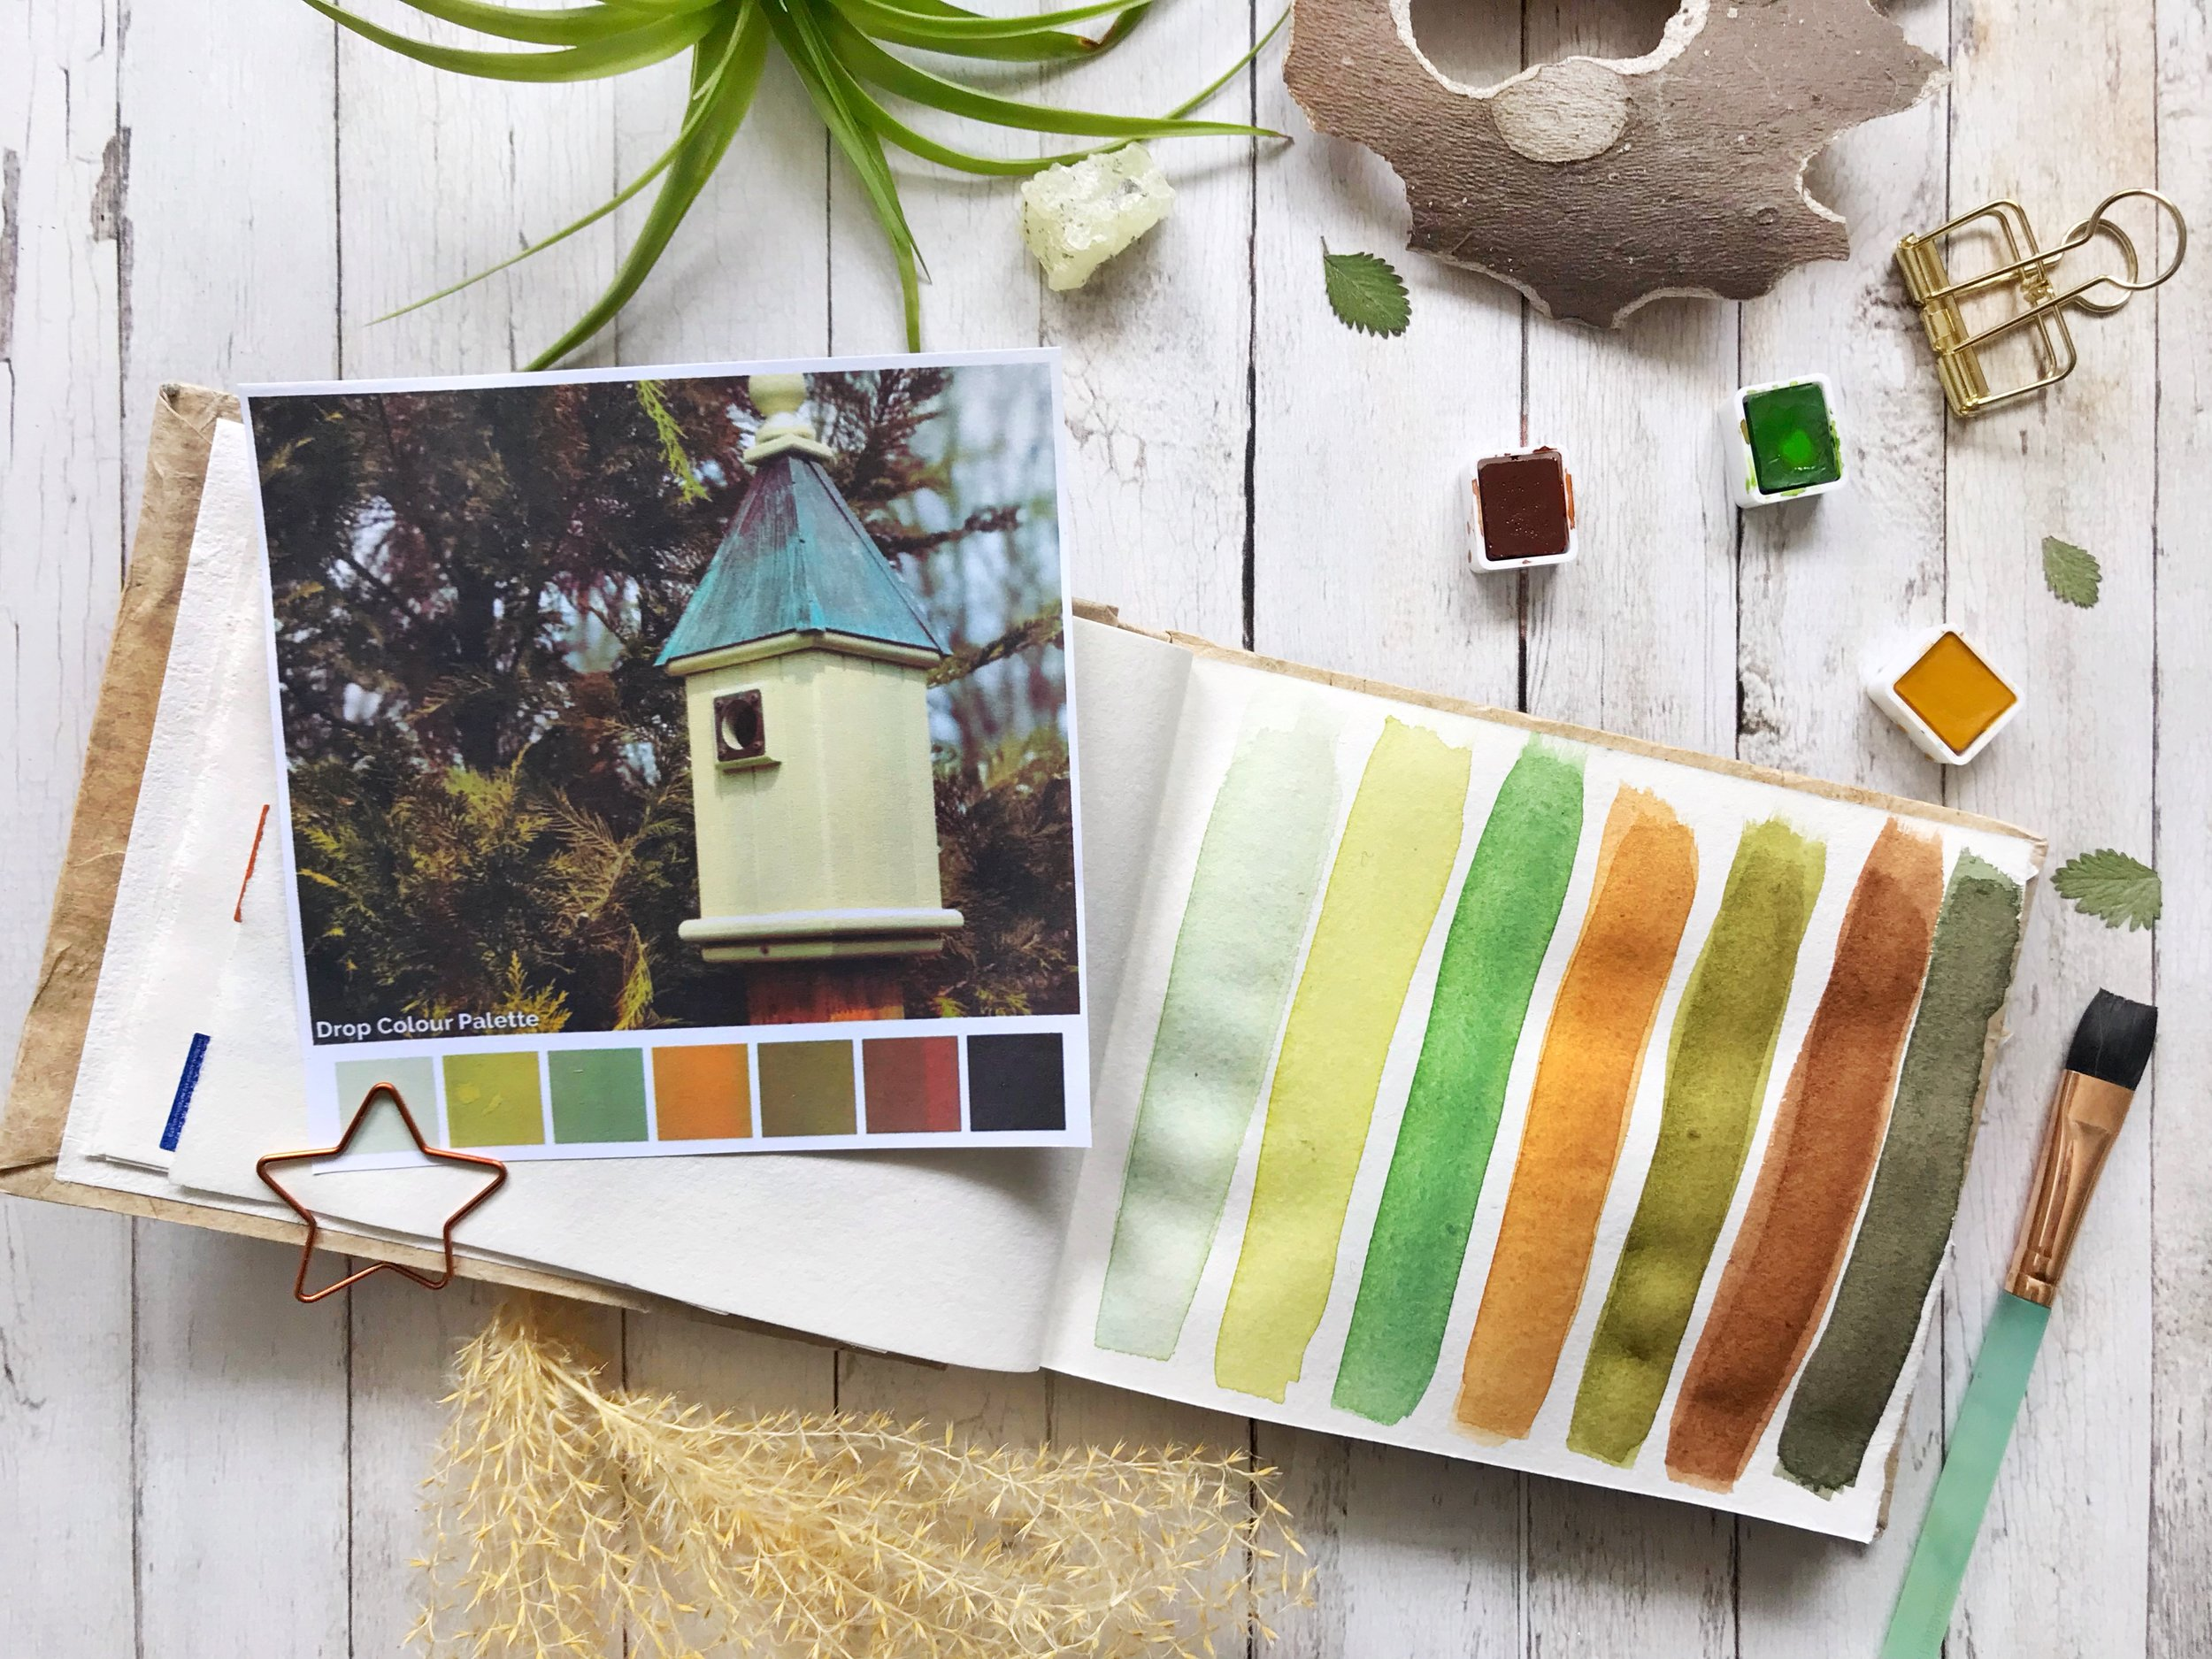 Finding Color Inspiration From Your Everyday Life using phone apps to create color palettes and art by Priscilla George for Experience True Colors art p (17).jpg